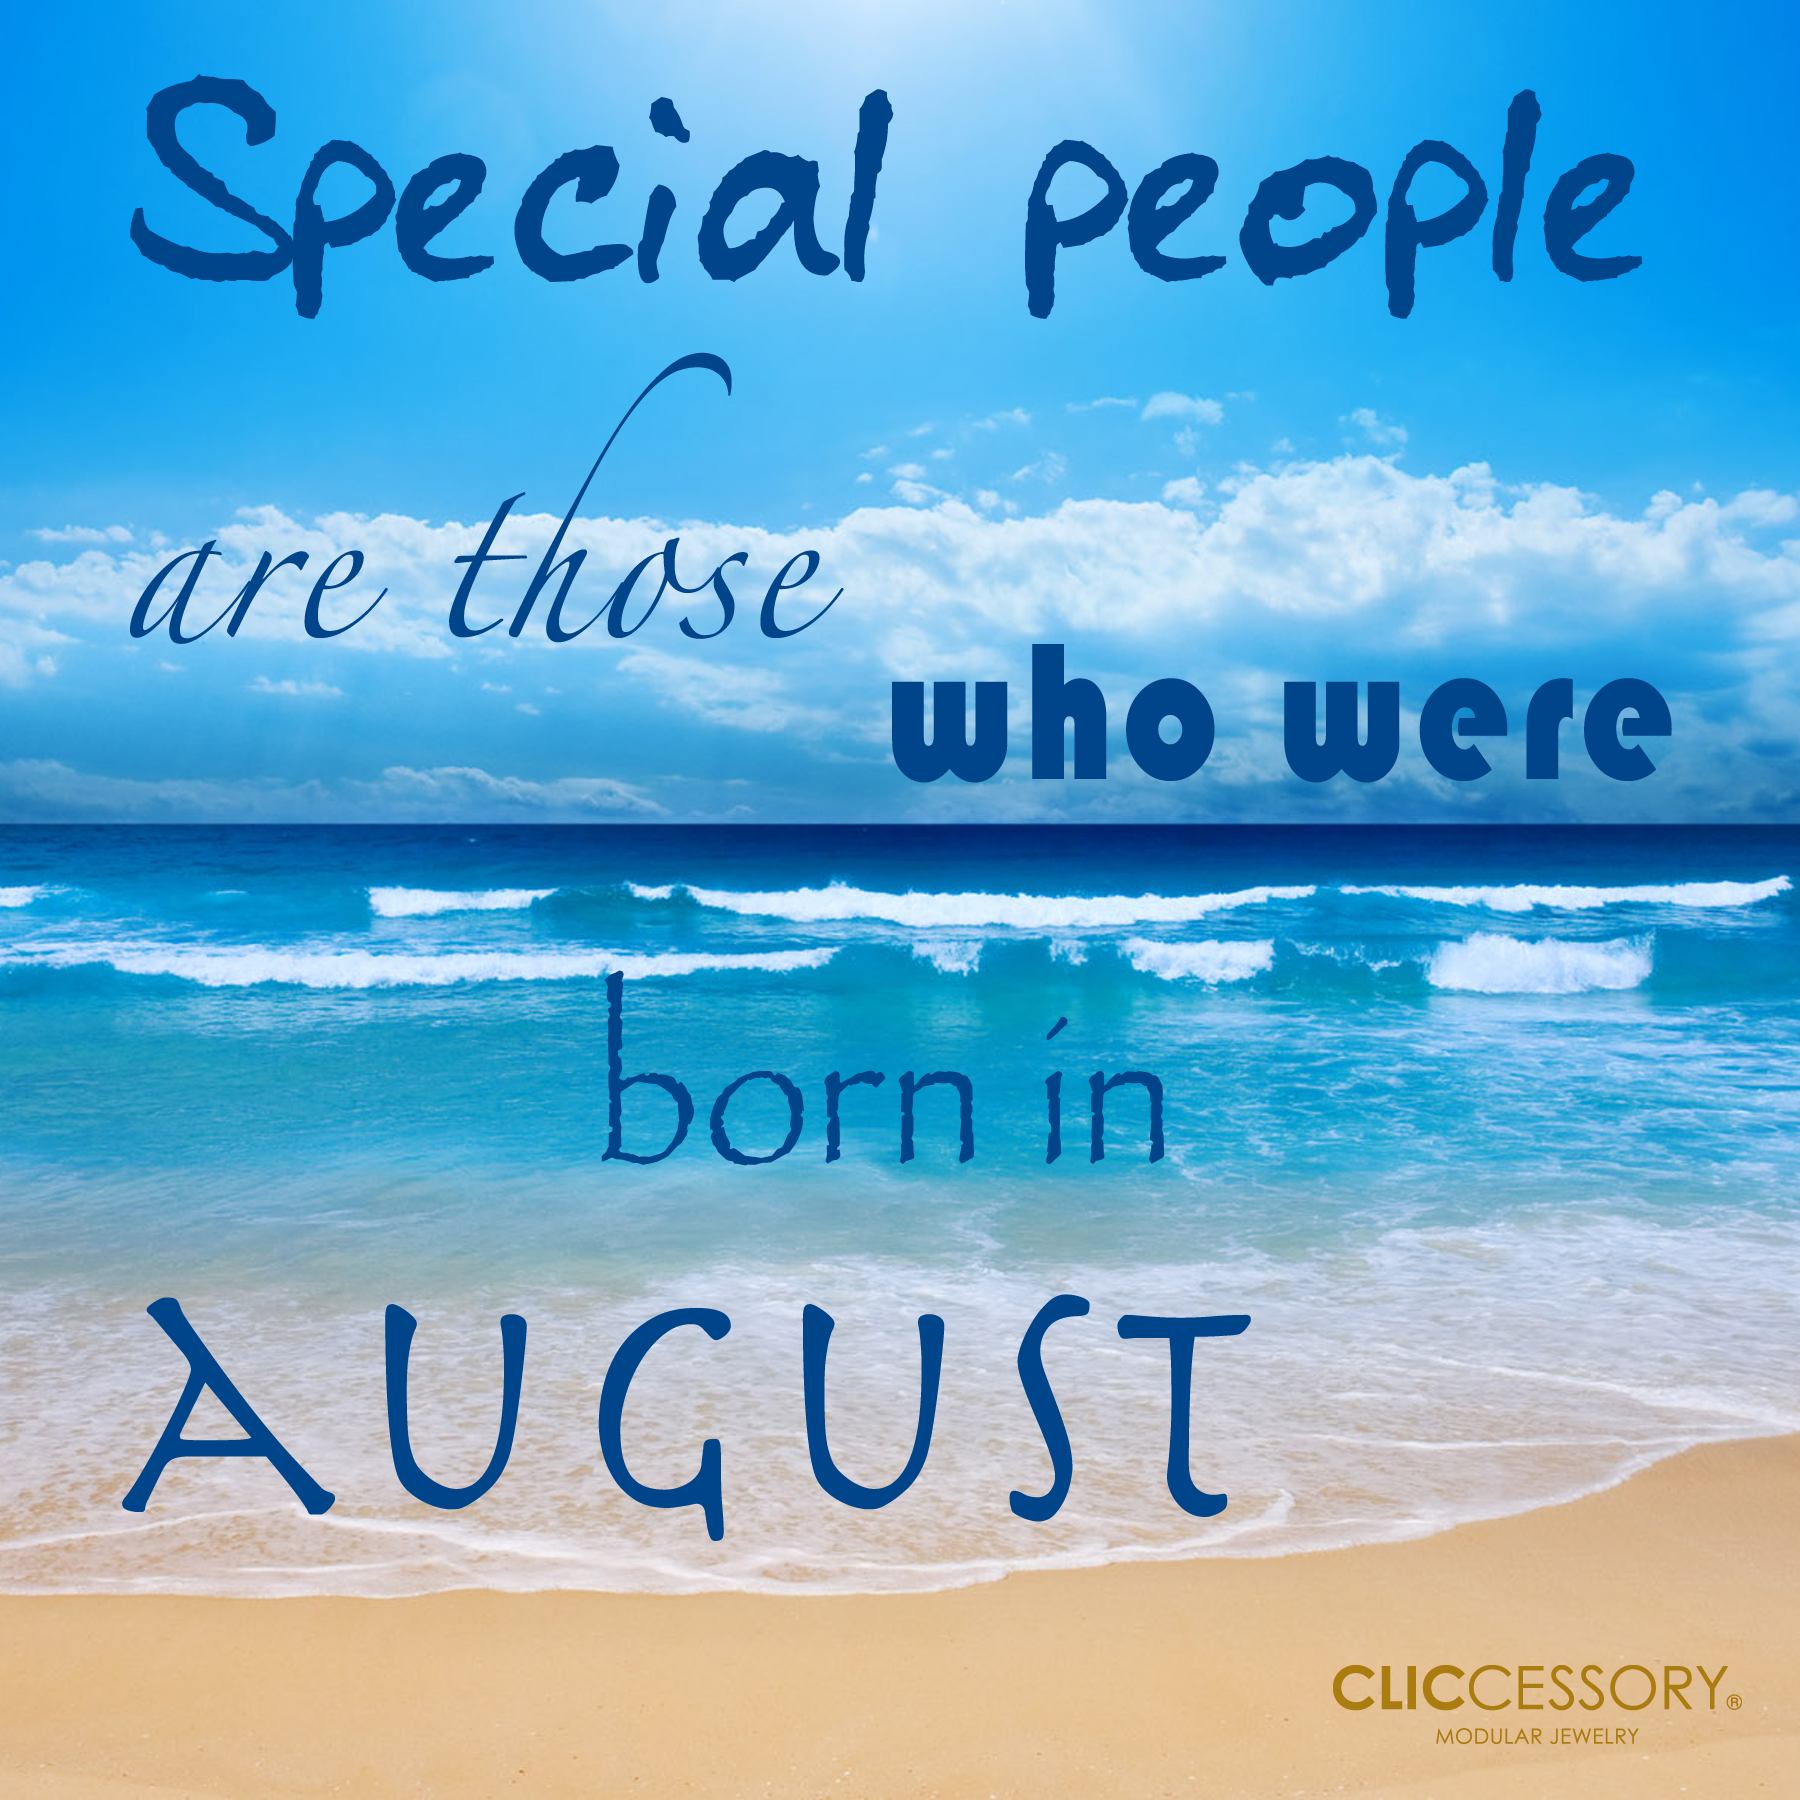 Special People Are Those Who Were Born In August. #visualstatement #quote # August